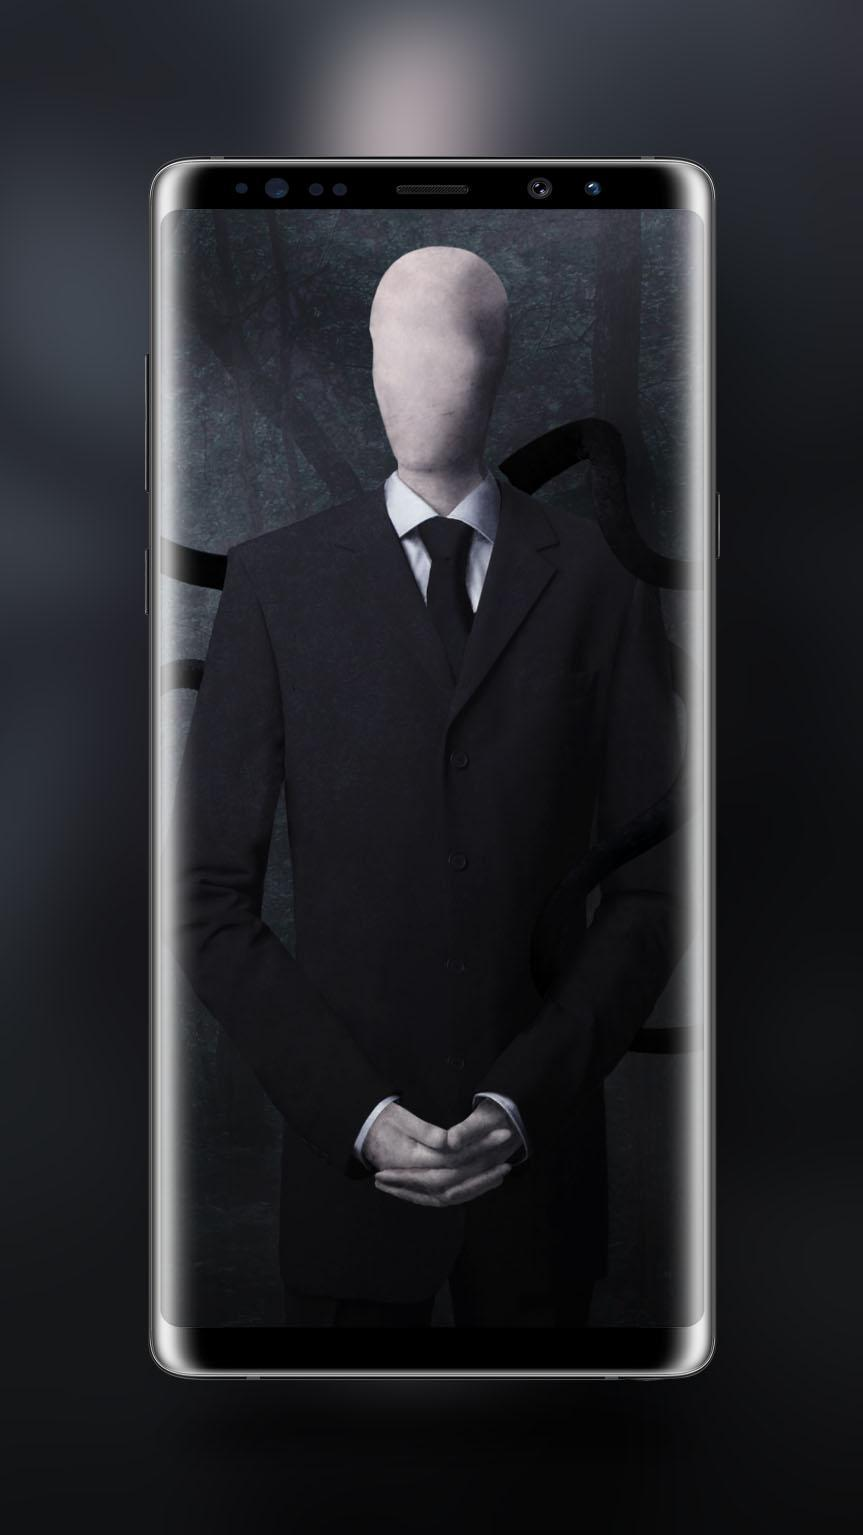 Slenderman Wallpapers Hd For Android Apk Download